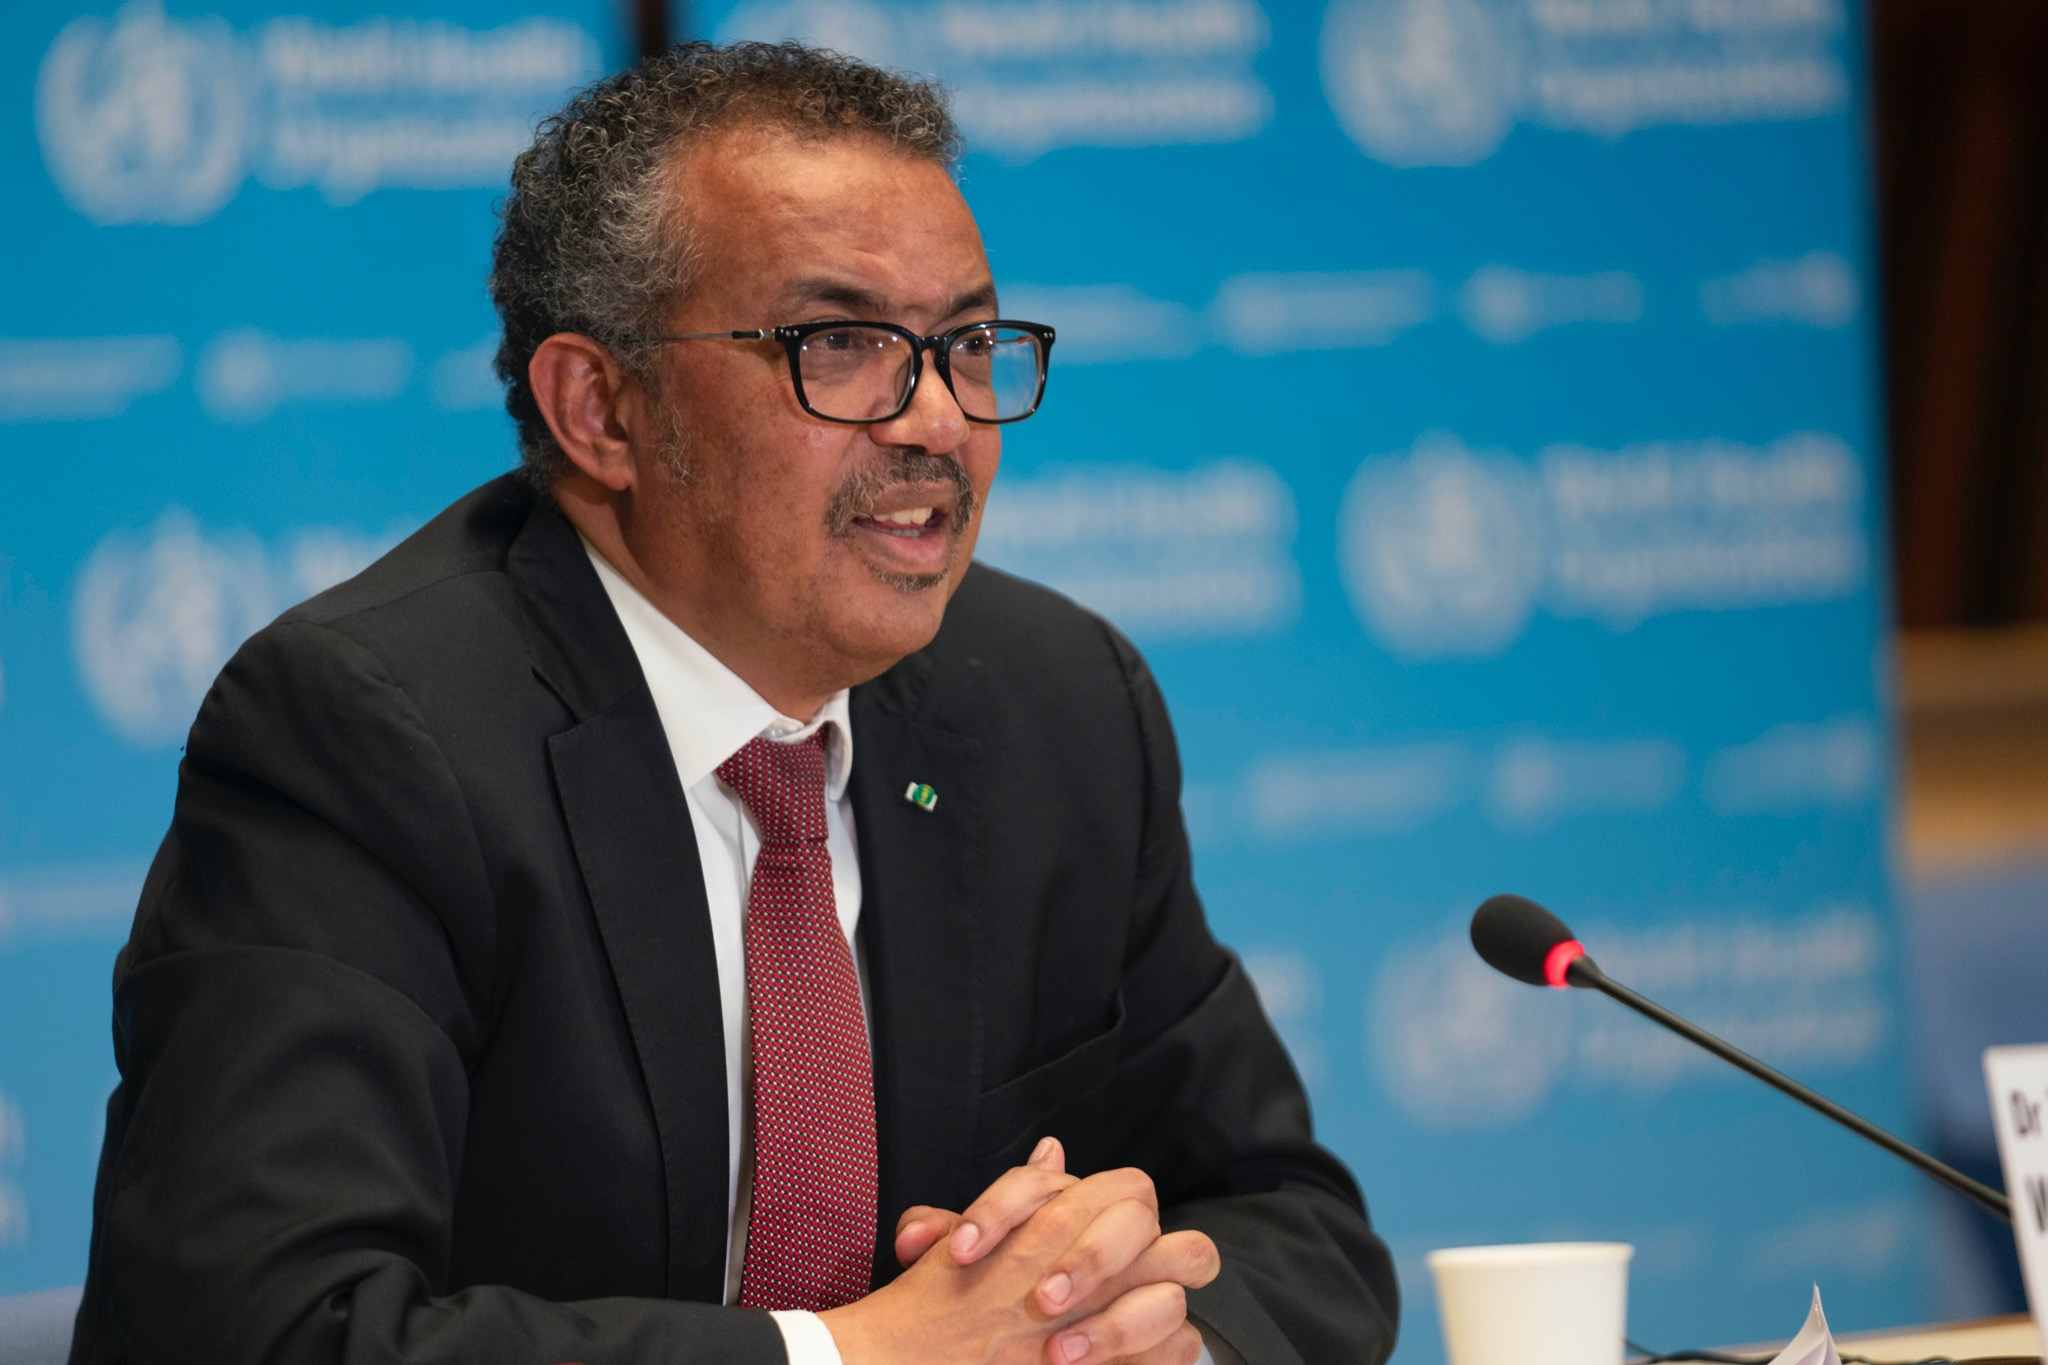 WHO director-general Tedros Adhanom Ghebreyesu